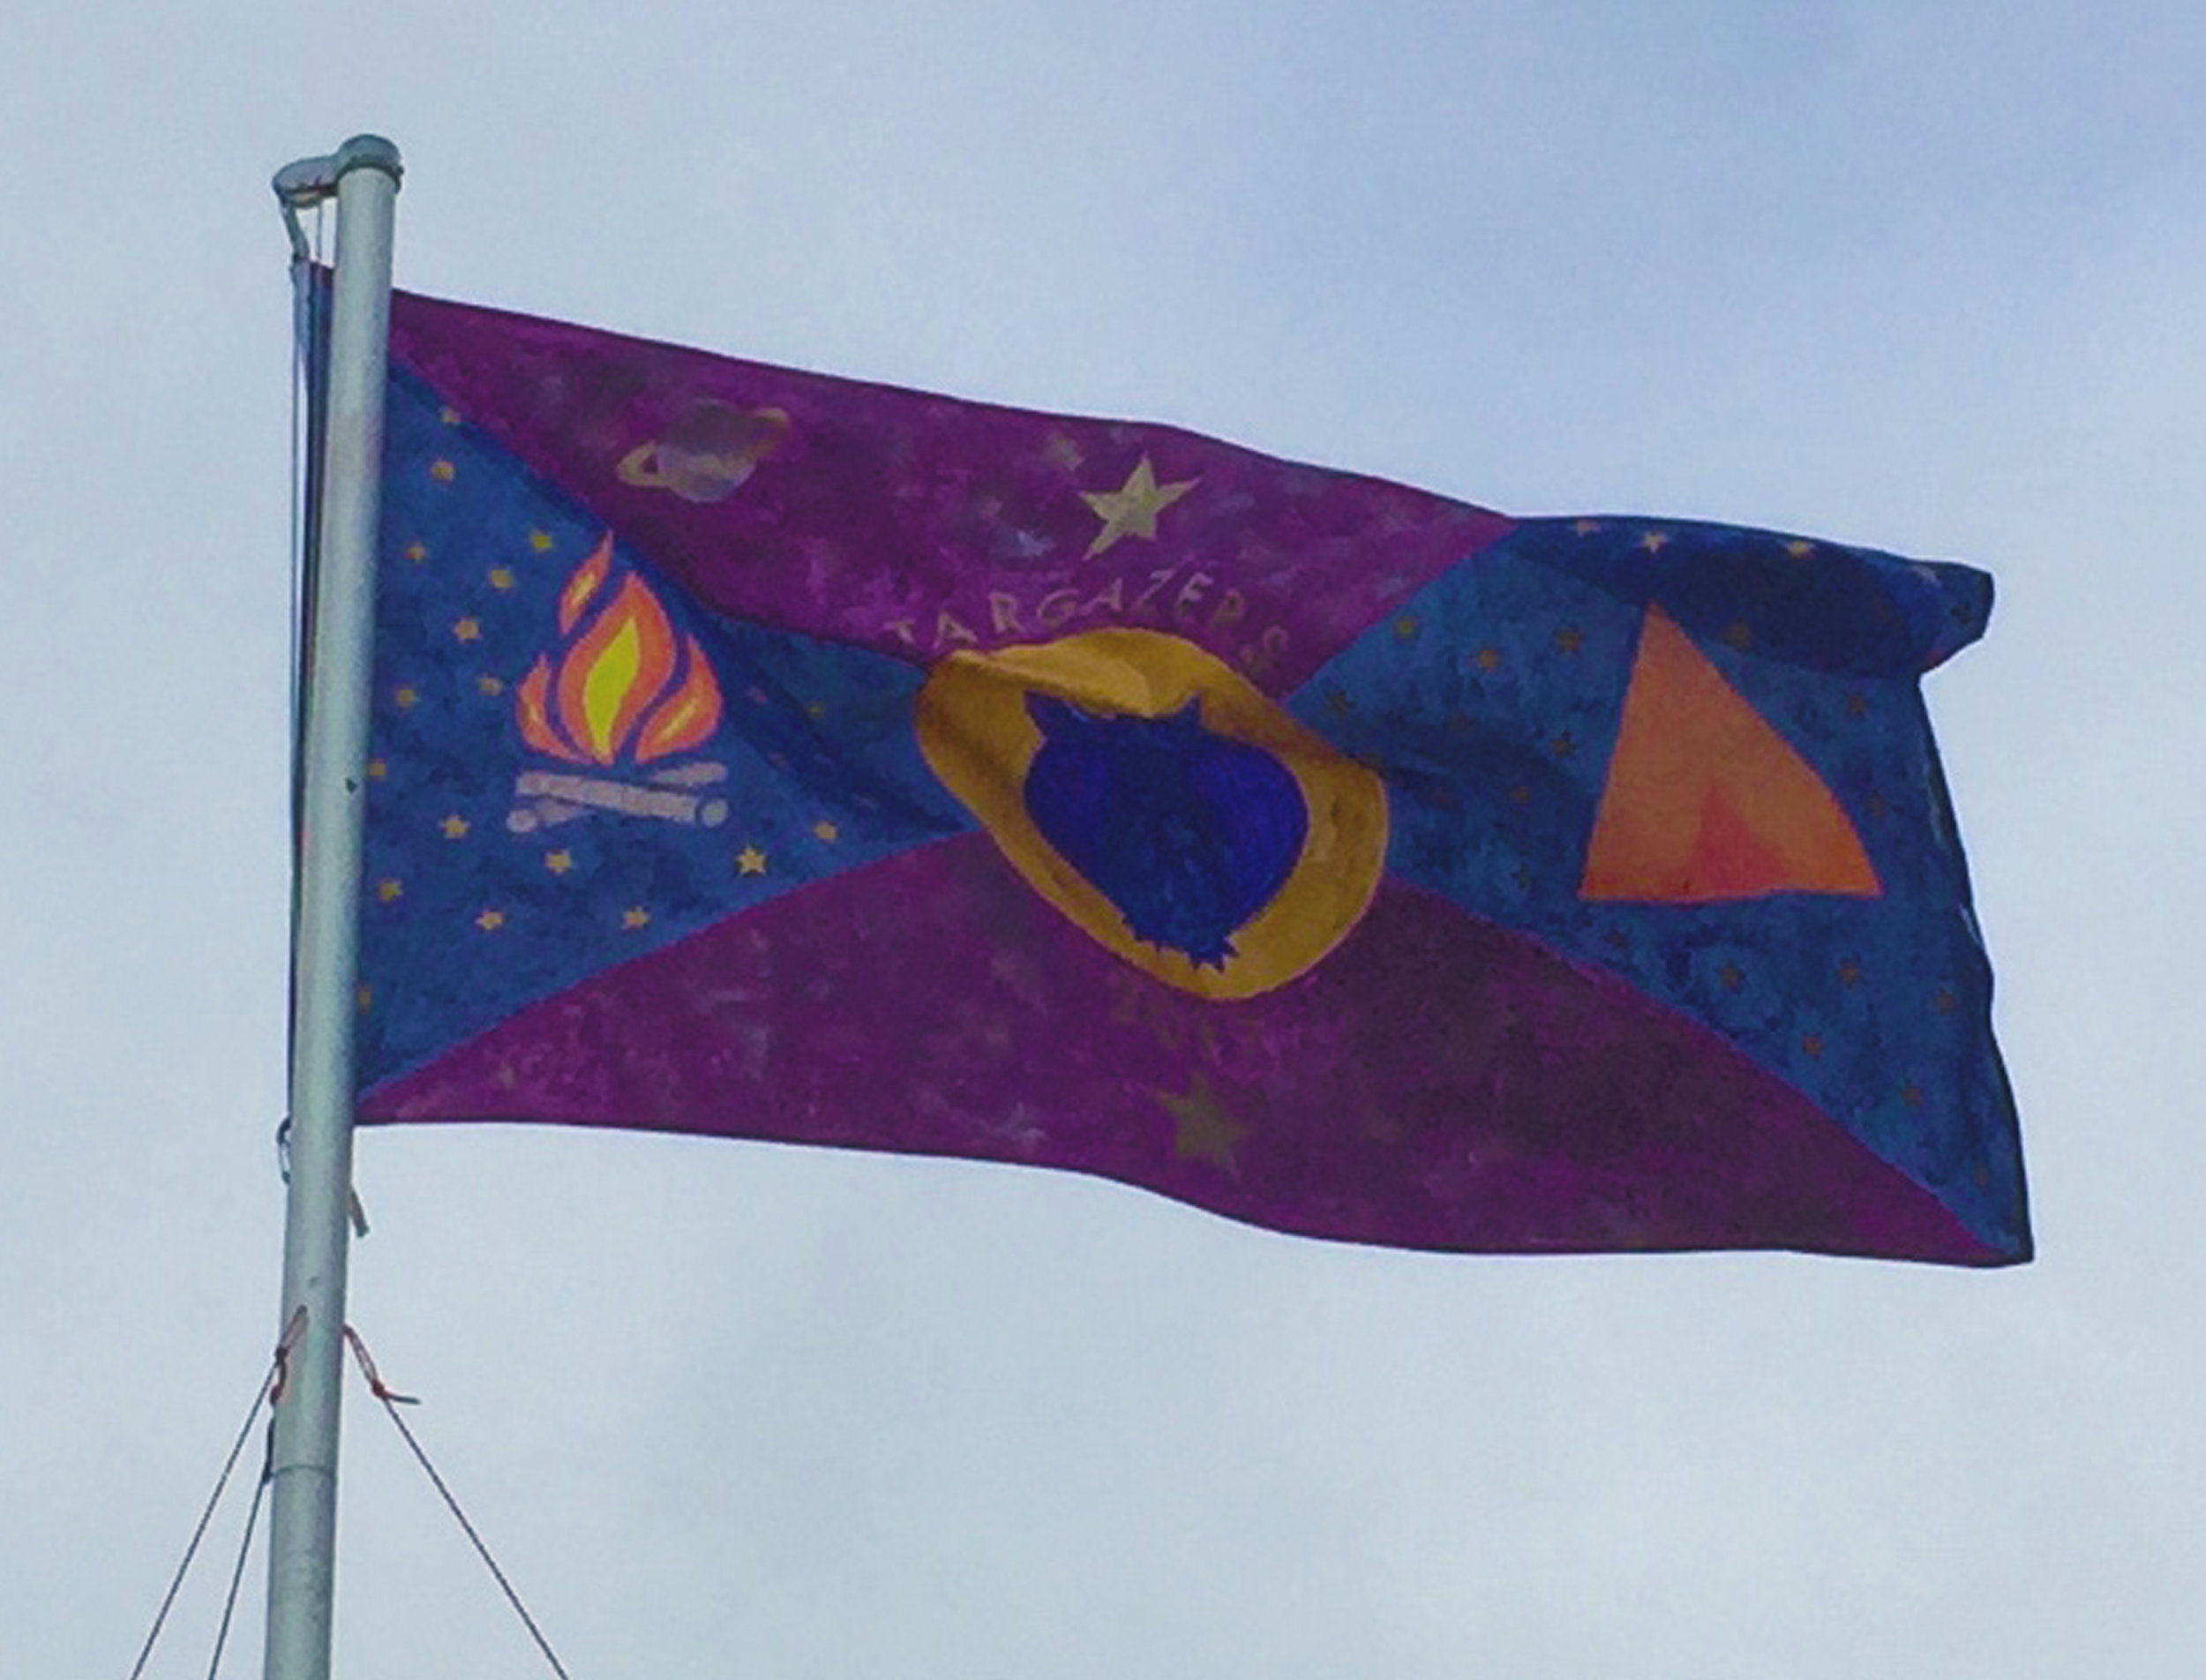 The opening ceremony includes raising the decorated camp flag!